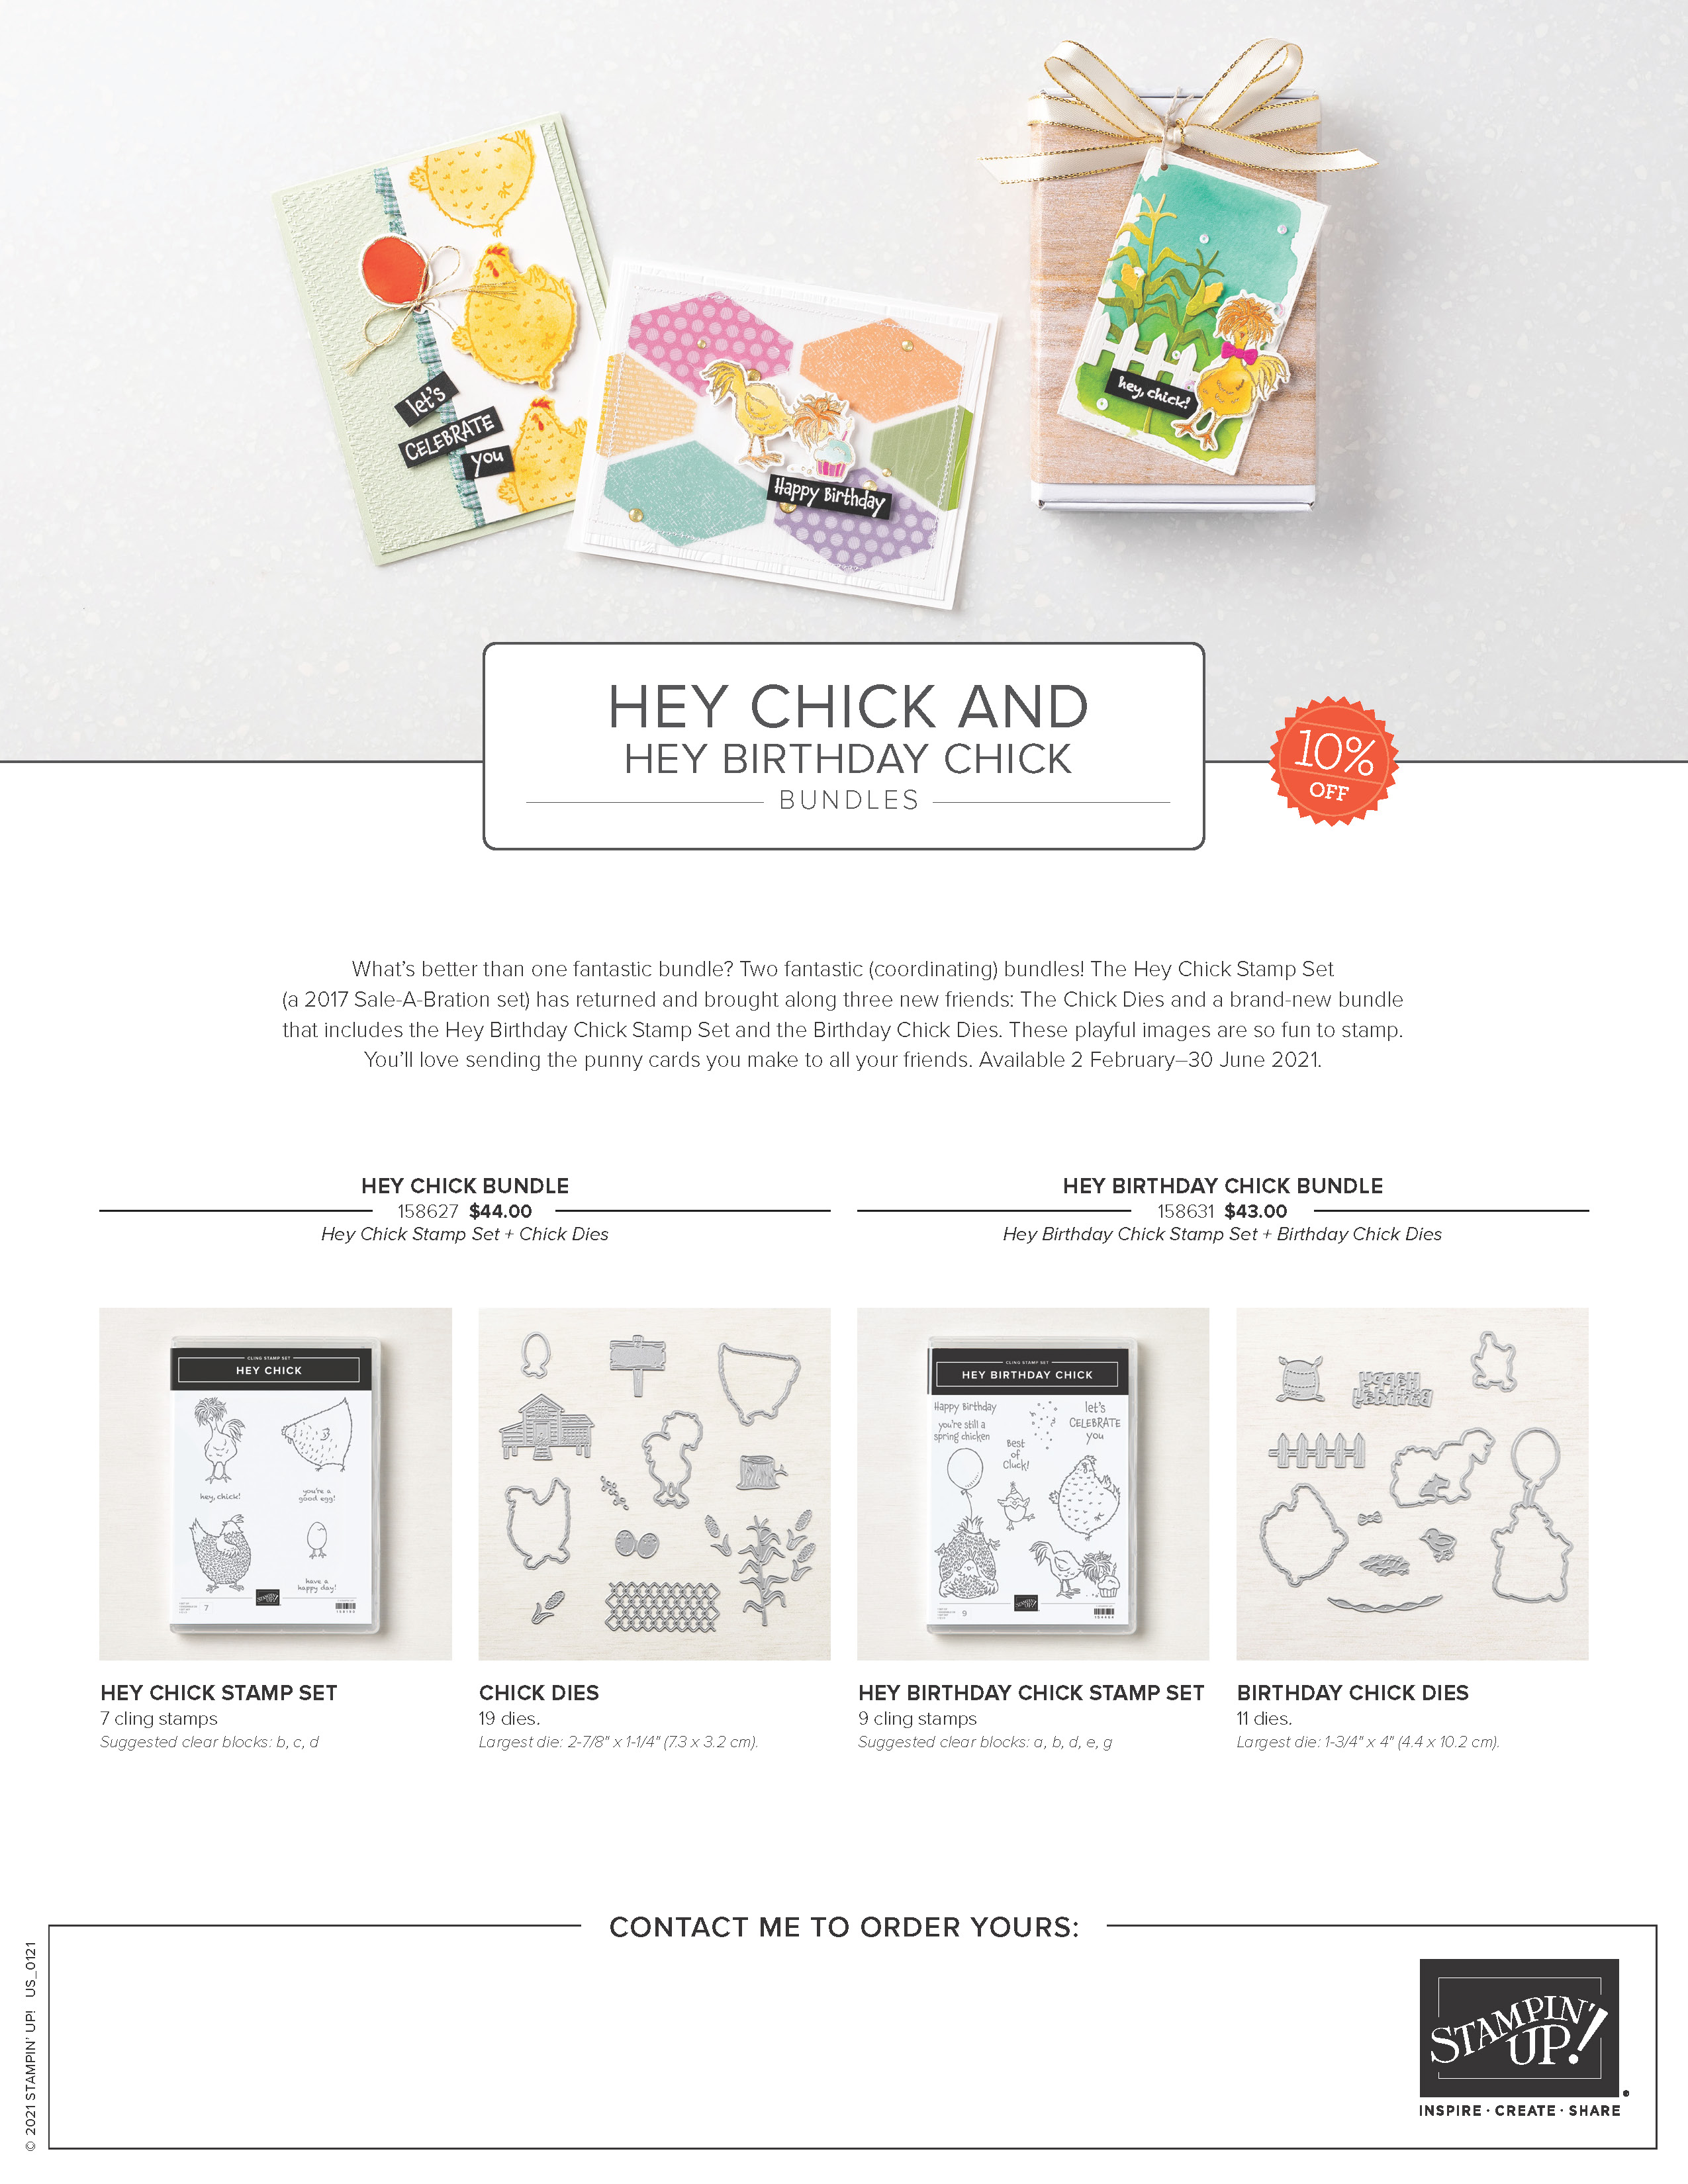 Hey Chick and Hey Birthday Chick Bundles Marketing Flyer US